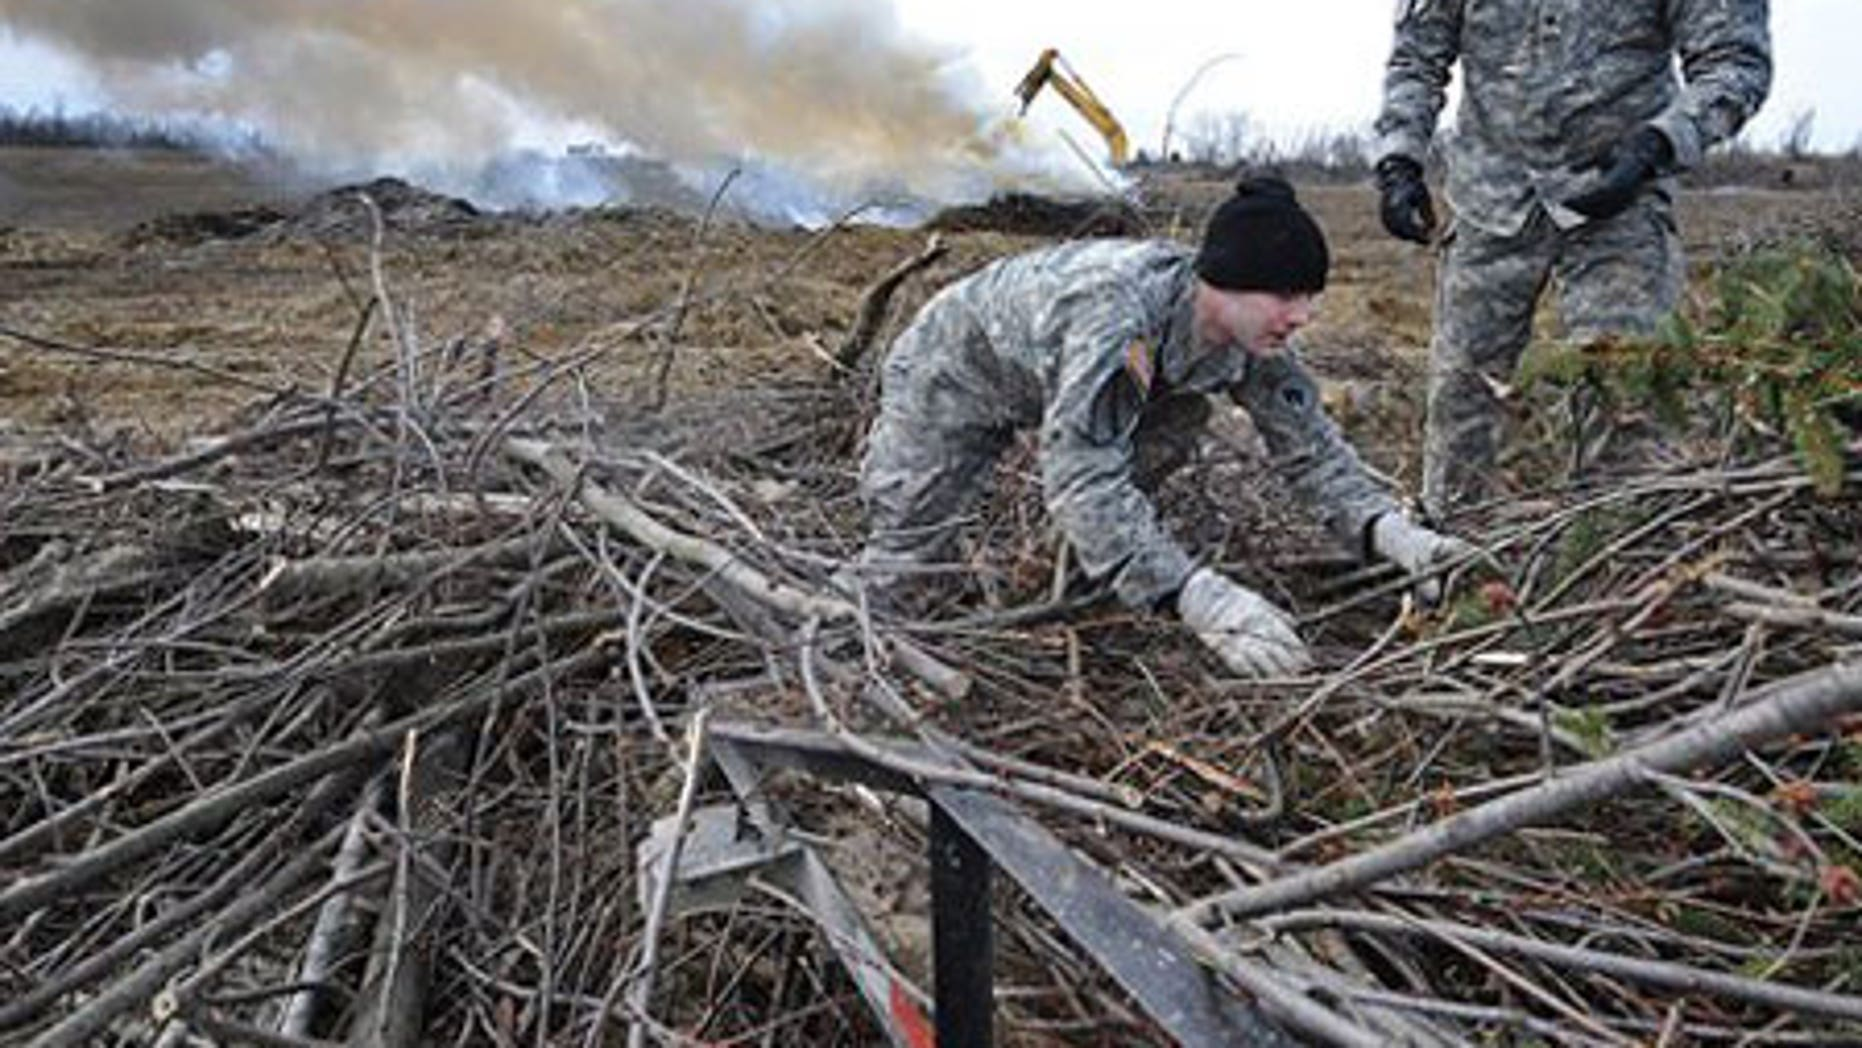 Feb. 2: Kentucky National guard members William Swartwood, left, and Jerry Bailey help unload branches from the back of a truck.